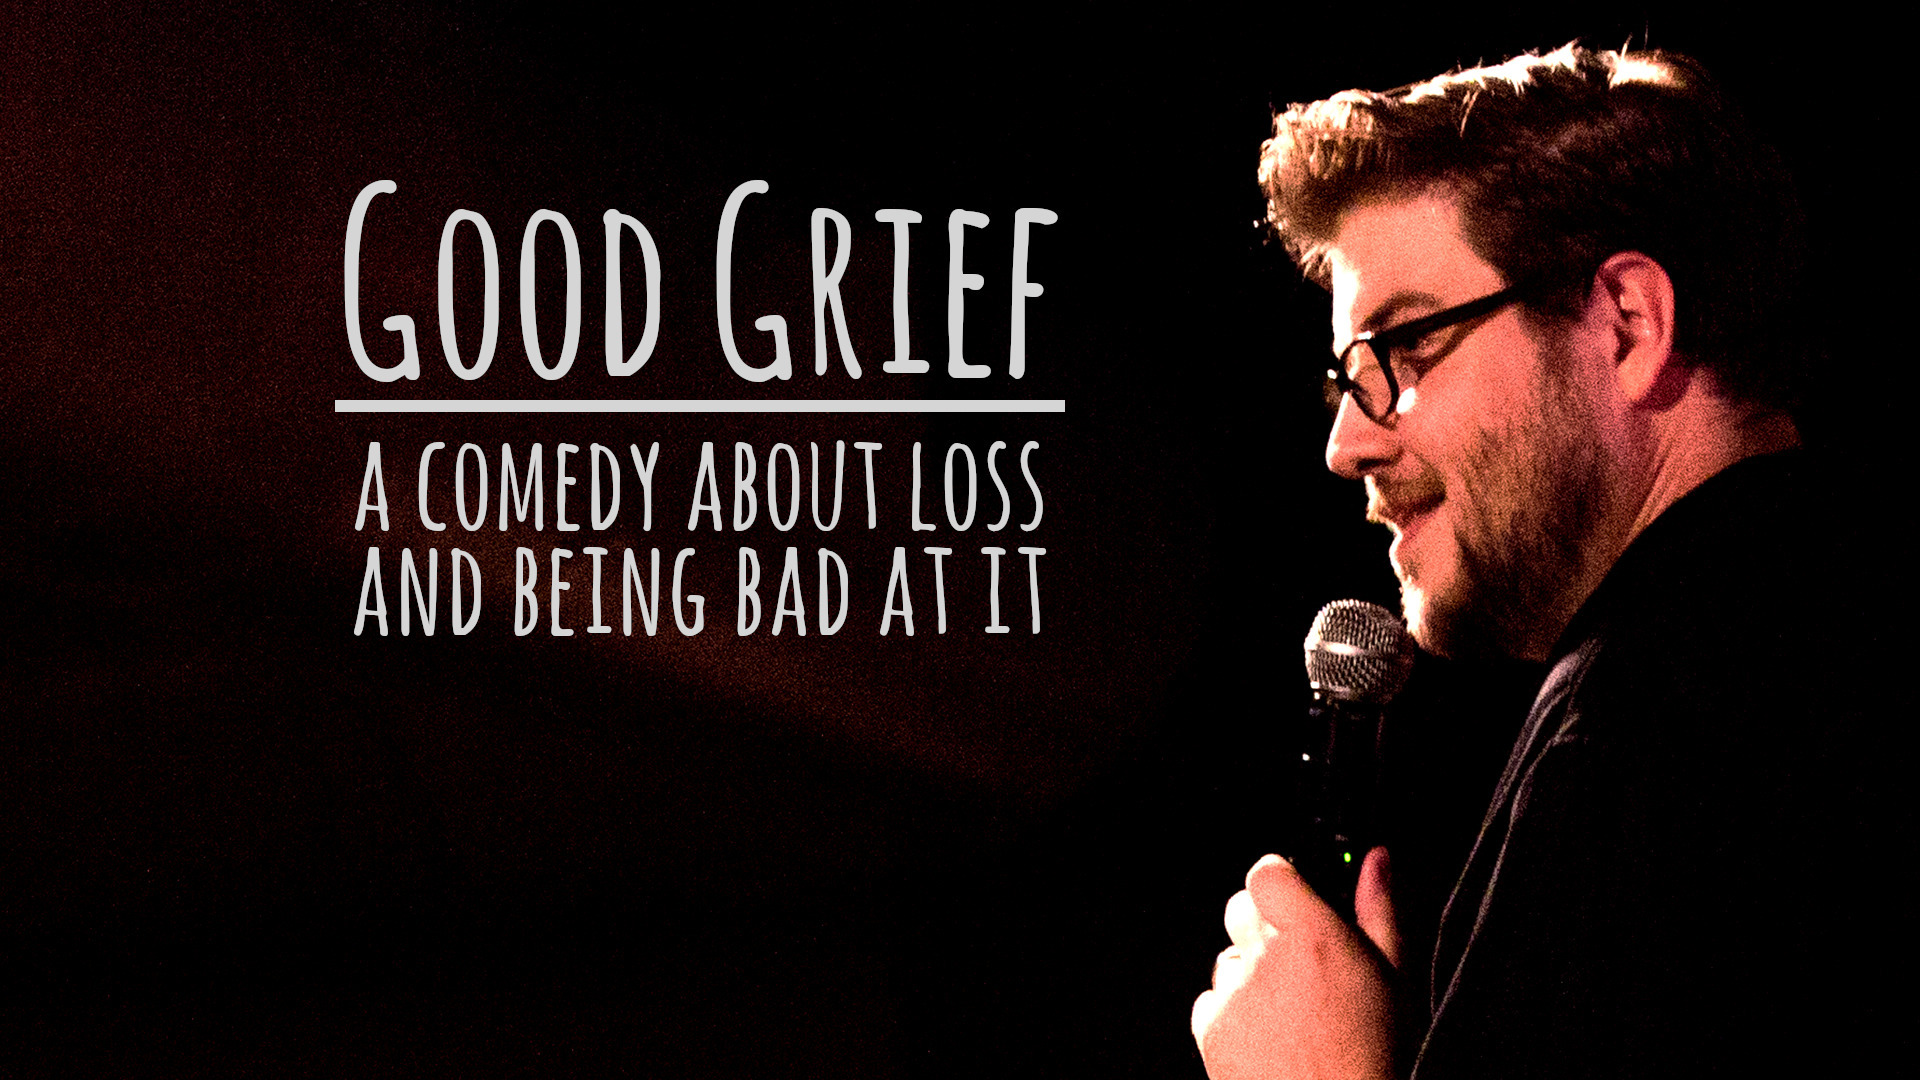 Good Grief: A Comedy About Loss and Being Bad at It